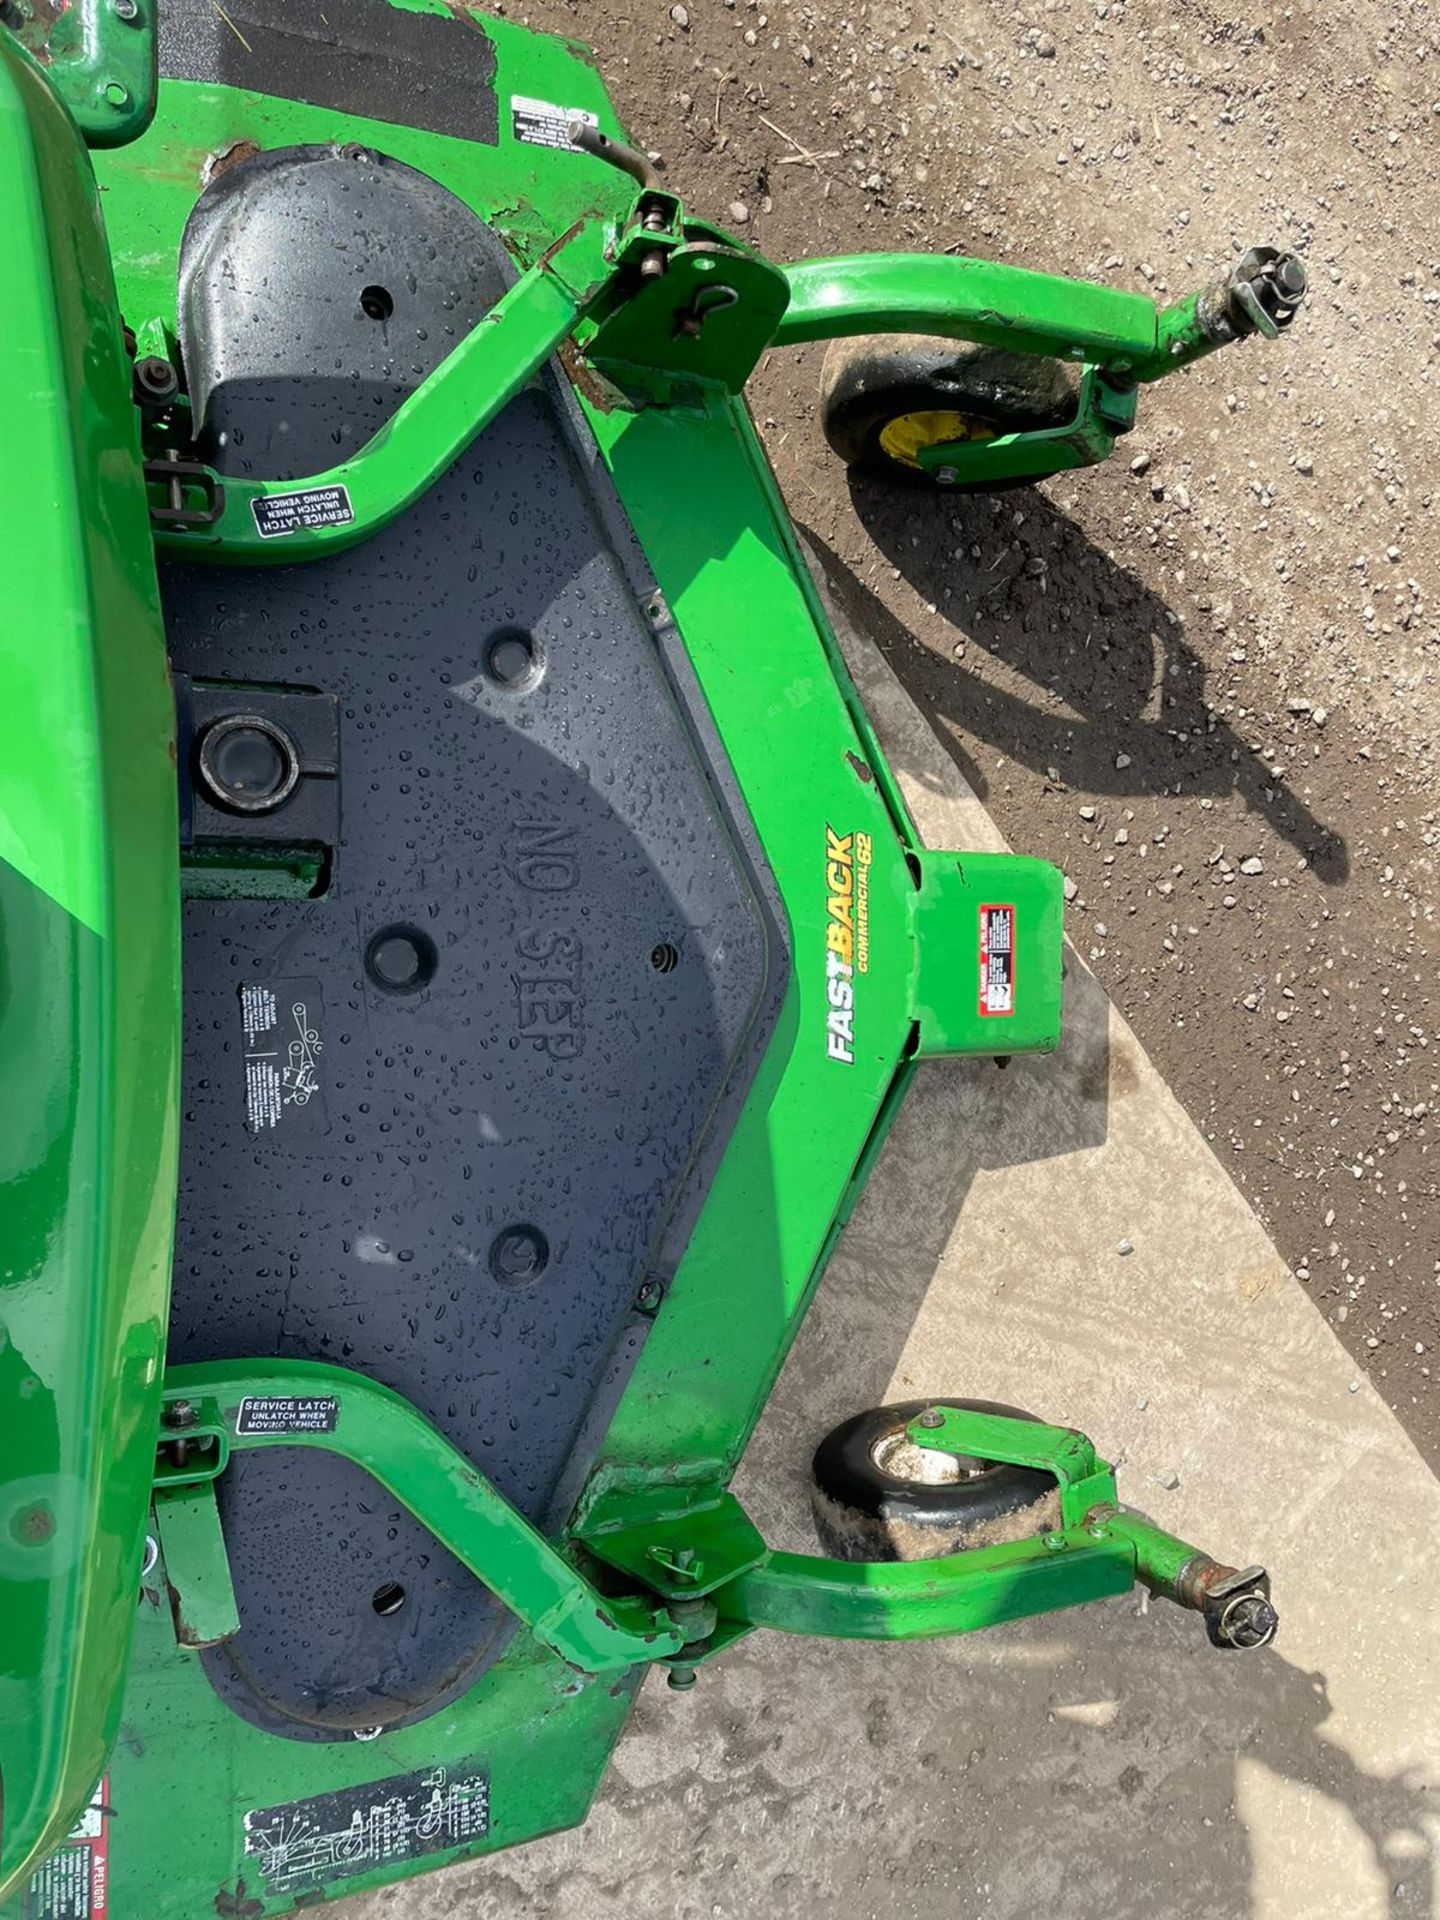 JOHN DEERE 1445 RIDE ON MOWER, RUNS DRIVES AND CUTS, IN USED BUT GOOD CONDITION *NO VAT* - Image 4 of 9